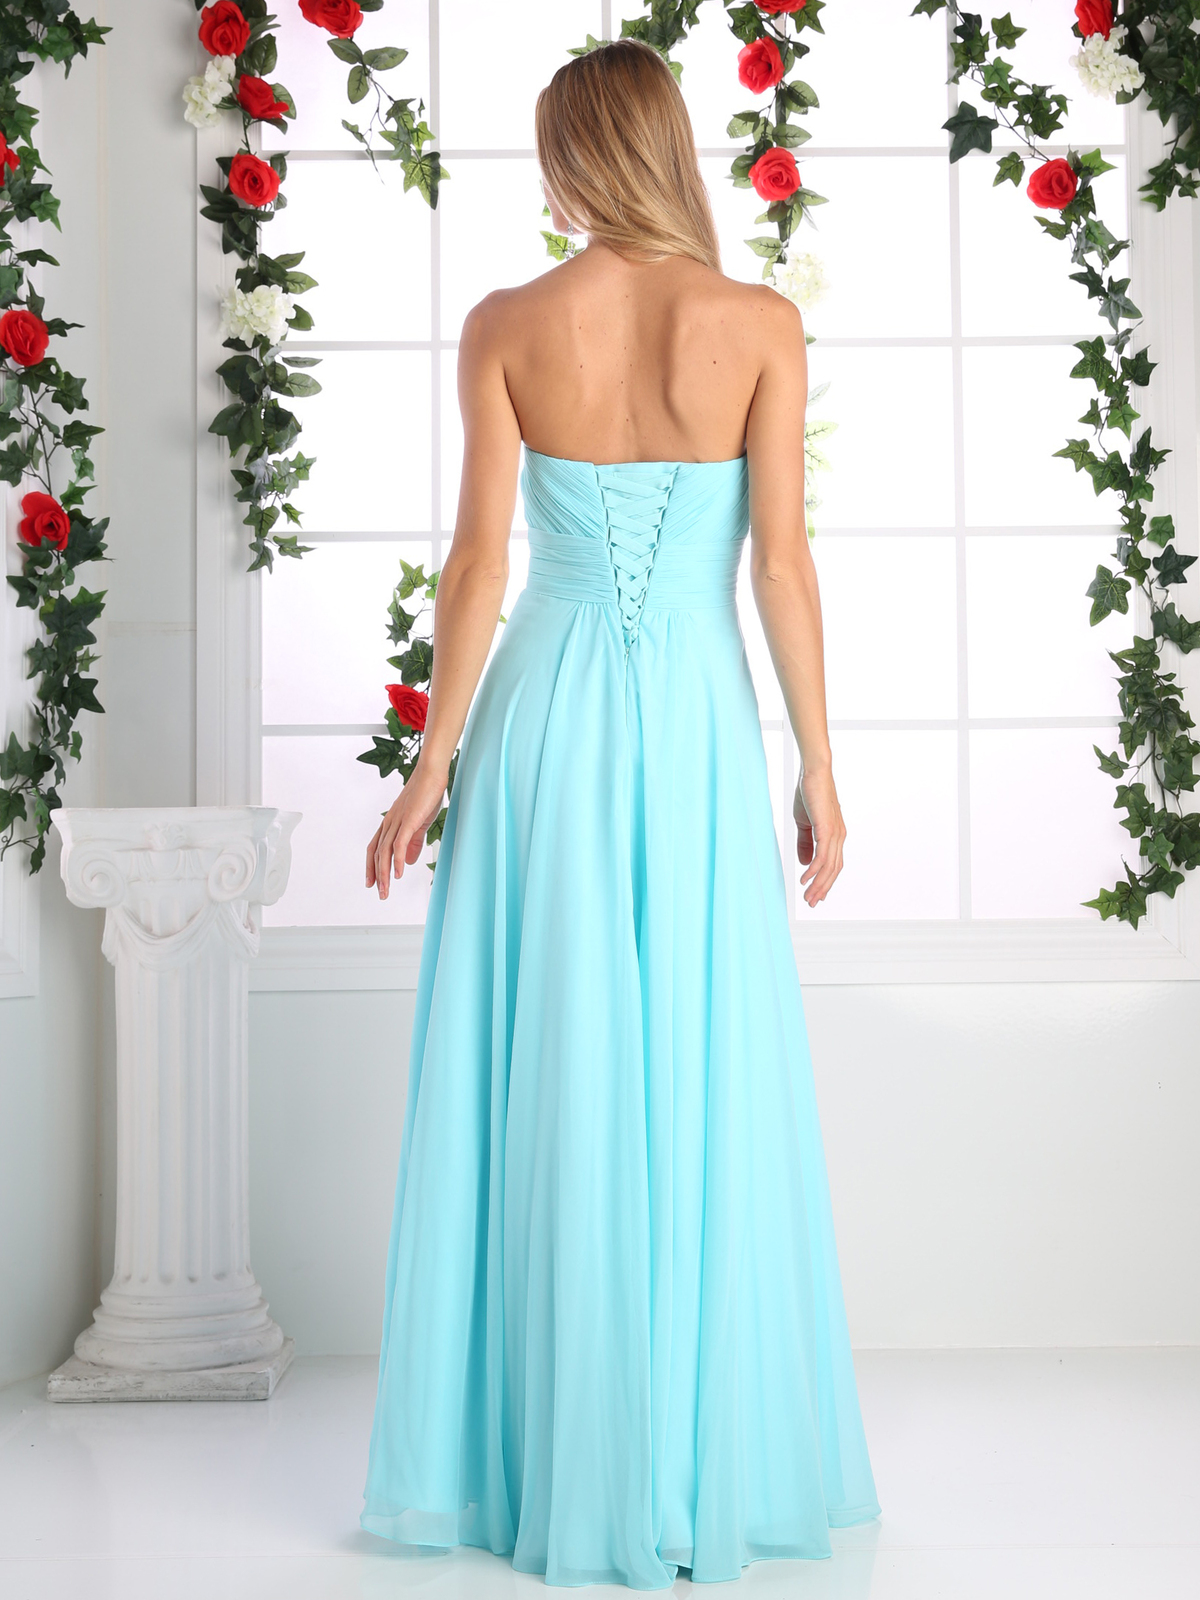 89c109711c9 ... CD-CJ216 Ruched Sweetheart Bridesmaid Dress with Floral Accent - Aqua